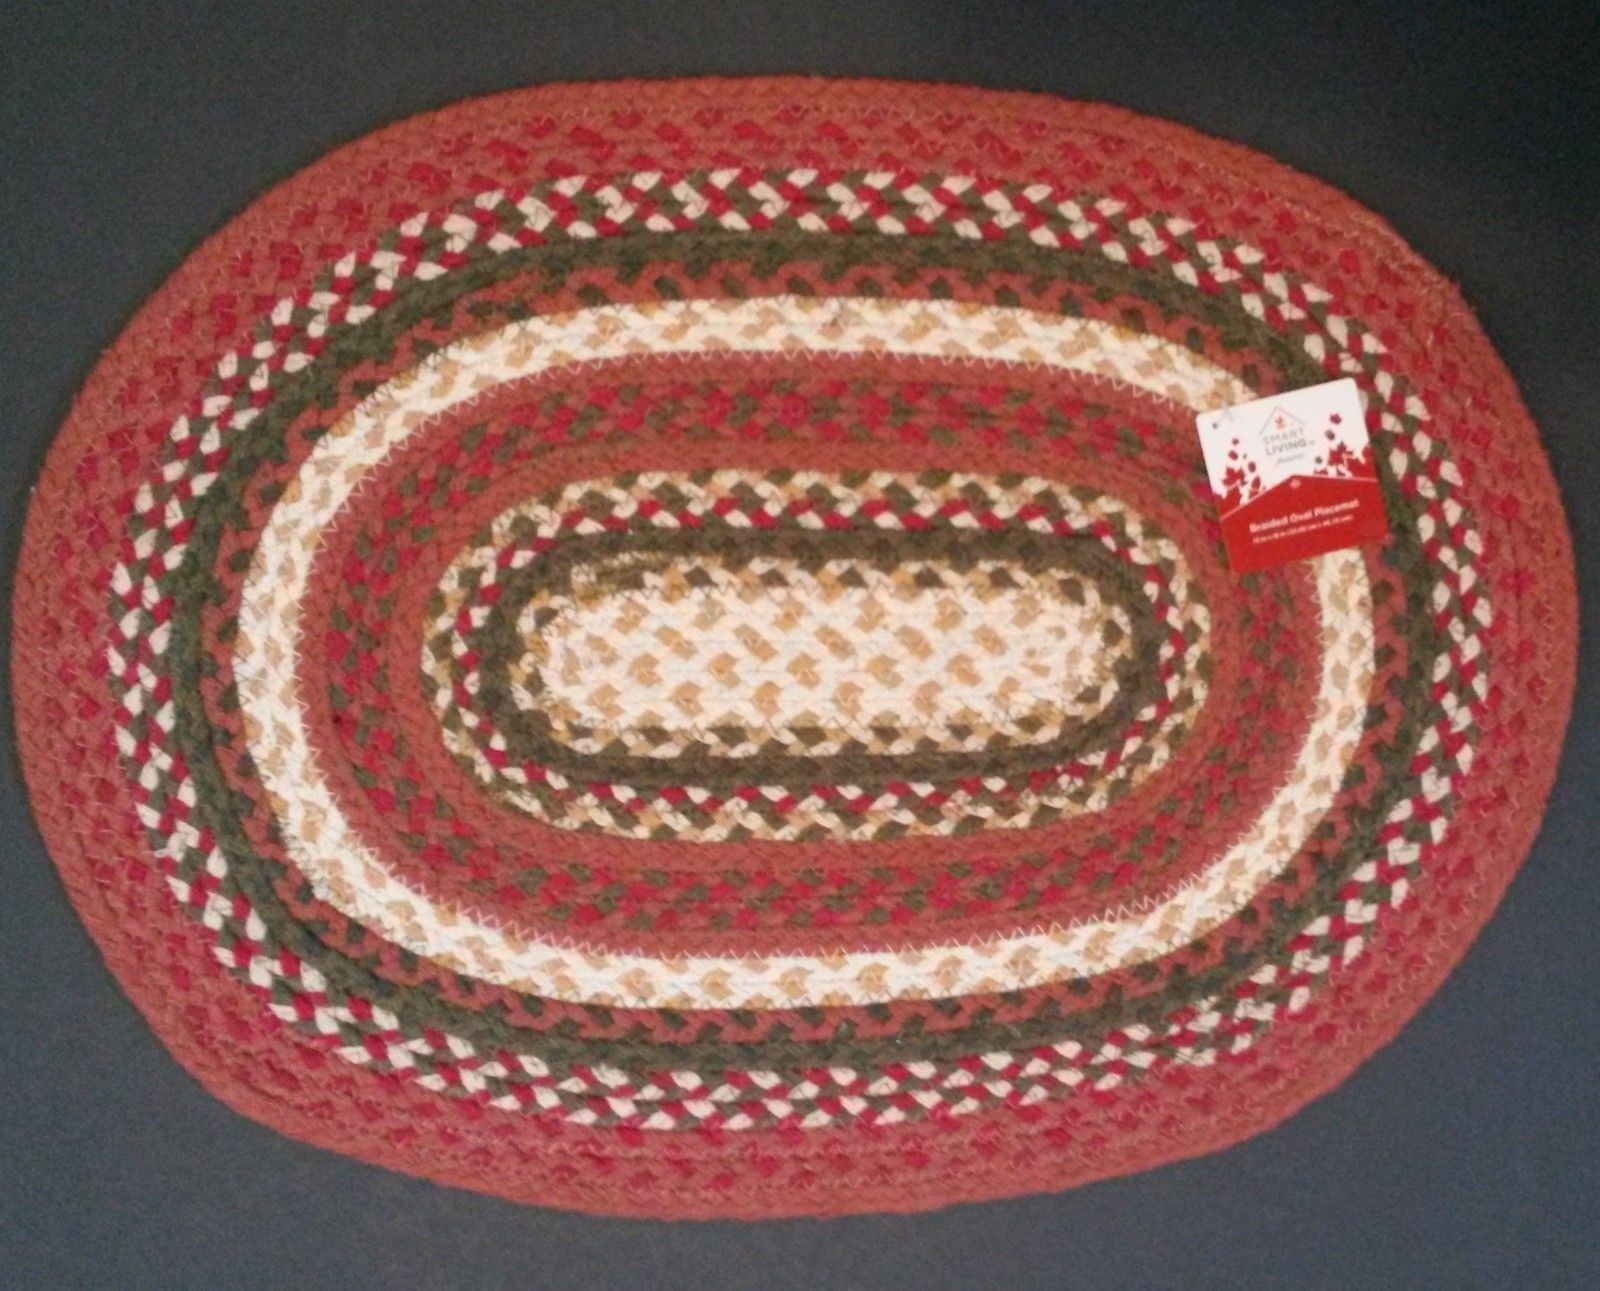 BRAIDED TABLE MAT PLACEMAT Hot Serving Trivet 13x18 Red Green Oval NEW